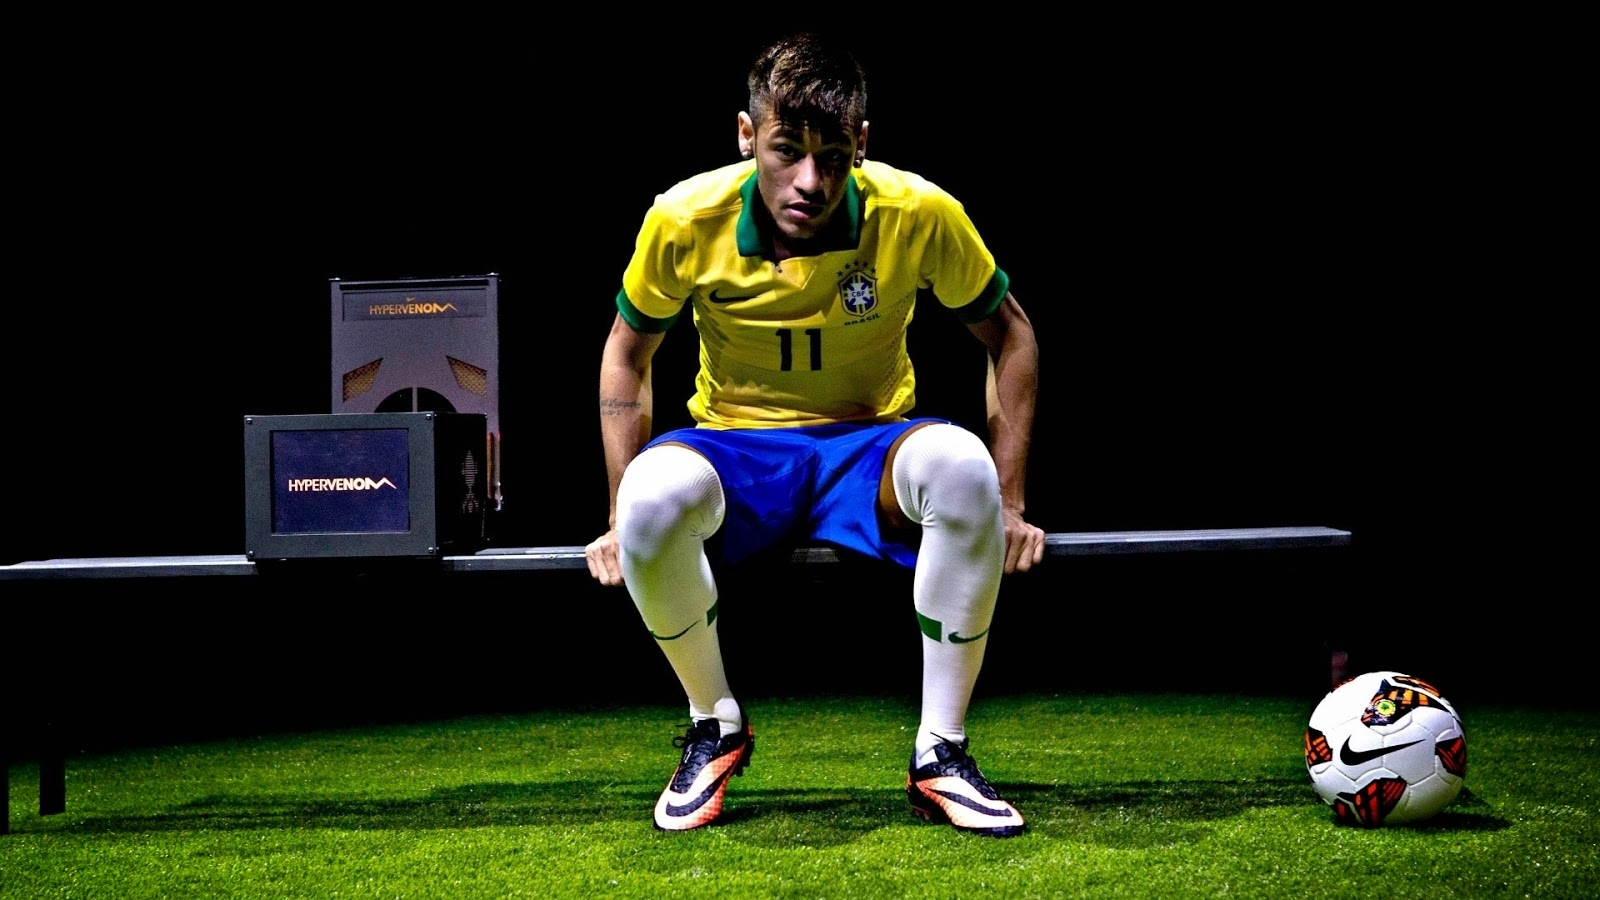 Hd wallpaper neymar - On This Page We Present You The Best Neymar Hd Wallpapers Of 2014 So Enjoy By Scrolling Down